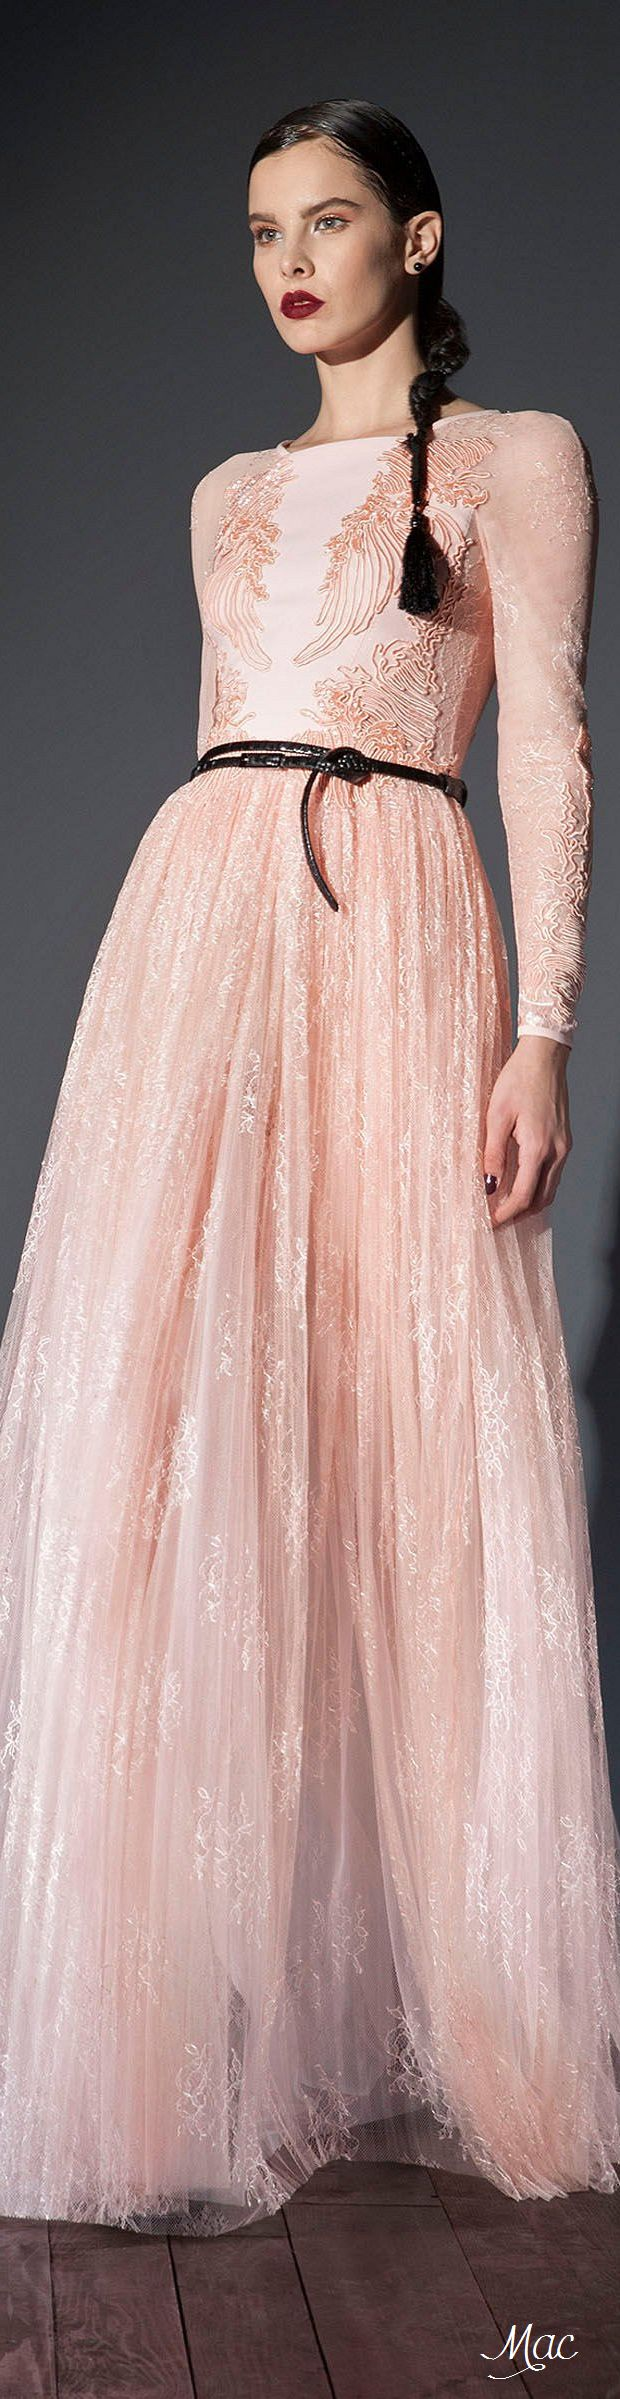 539 best Peach Parfait images on Pinterest | Alta costura, Moda de ...